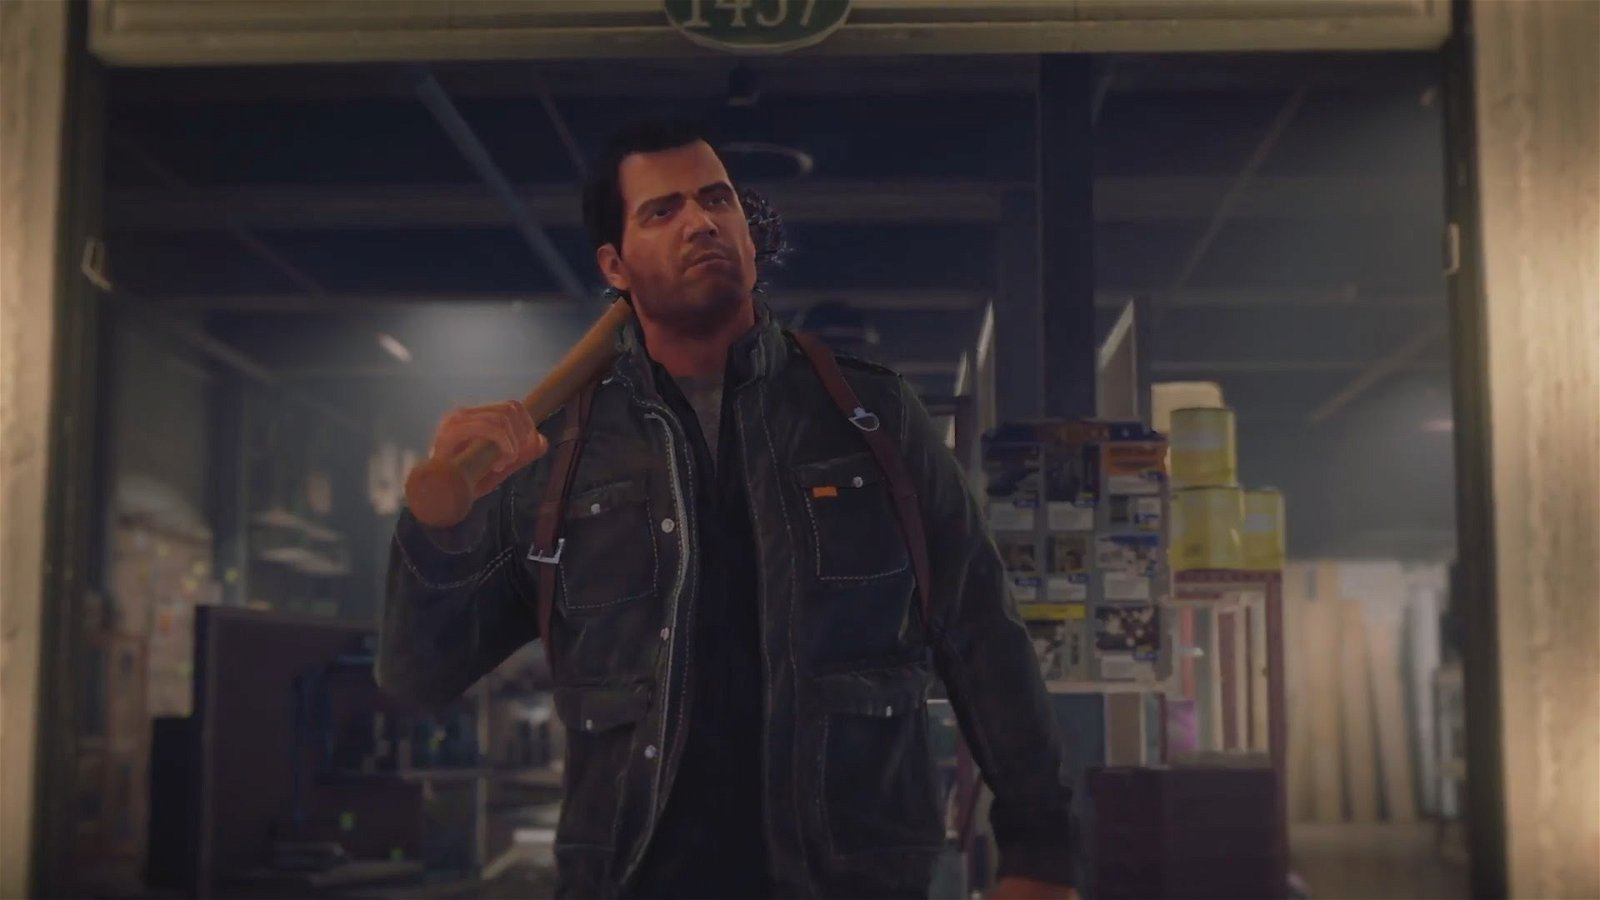 Dead Rising 4: Lots of Zombies, Low frame rate, Ugly graphics, No time mechanic 4